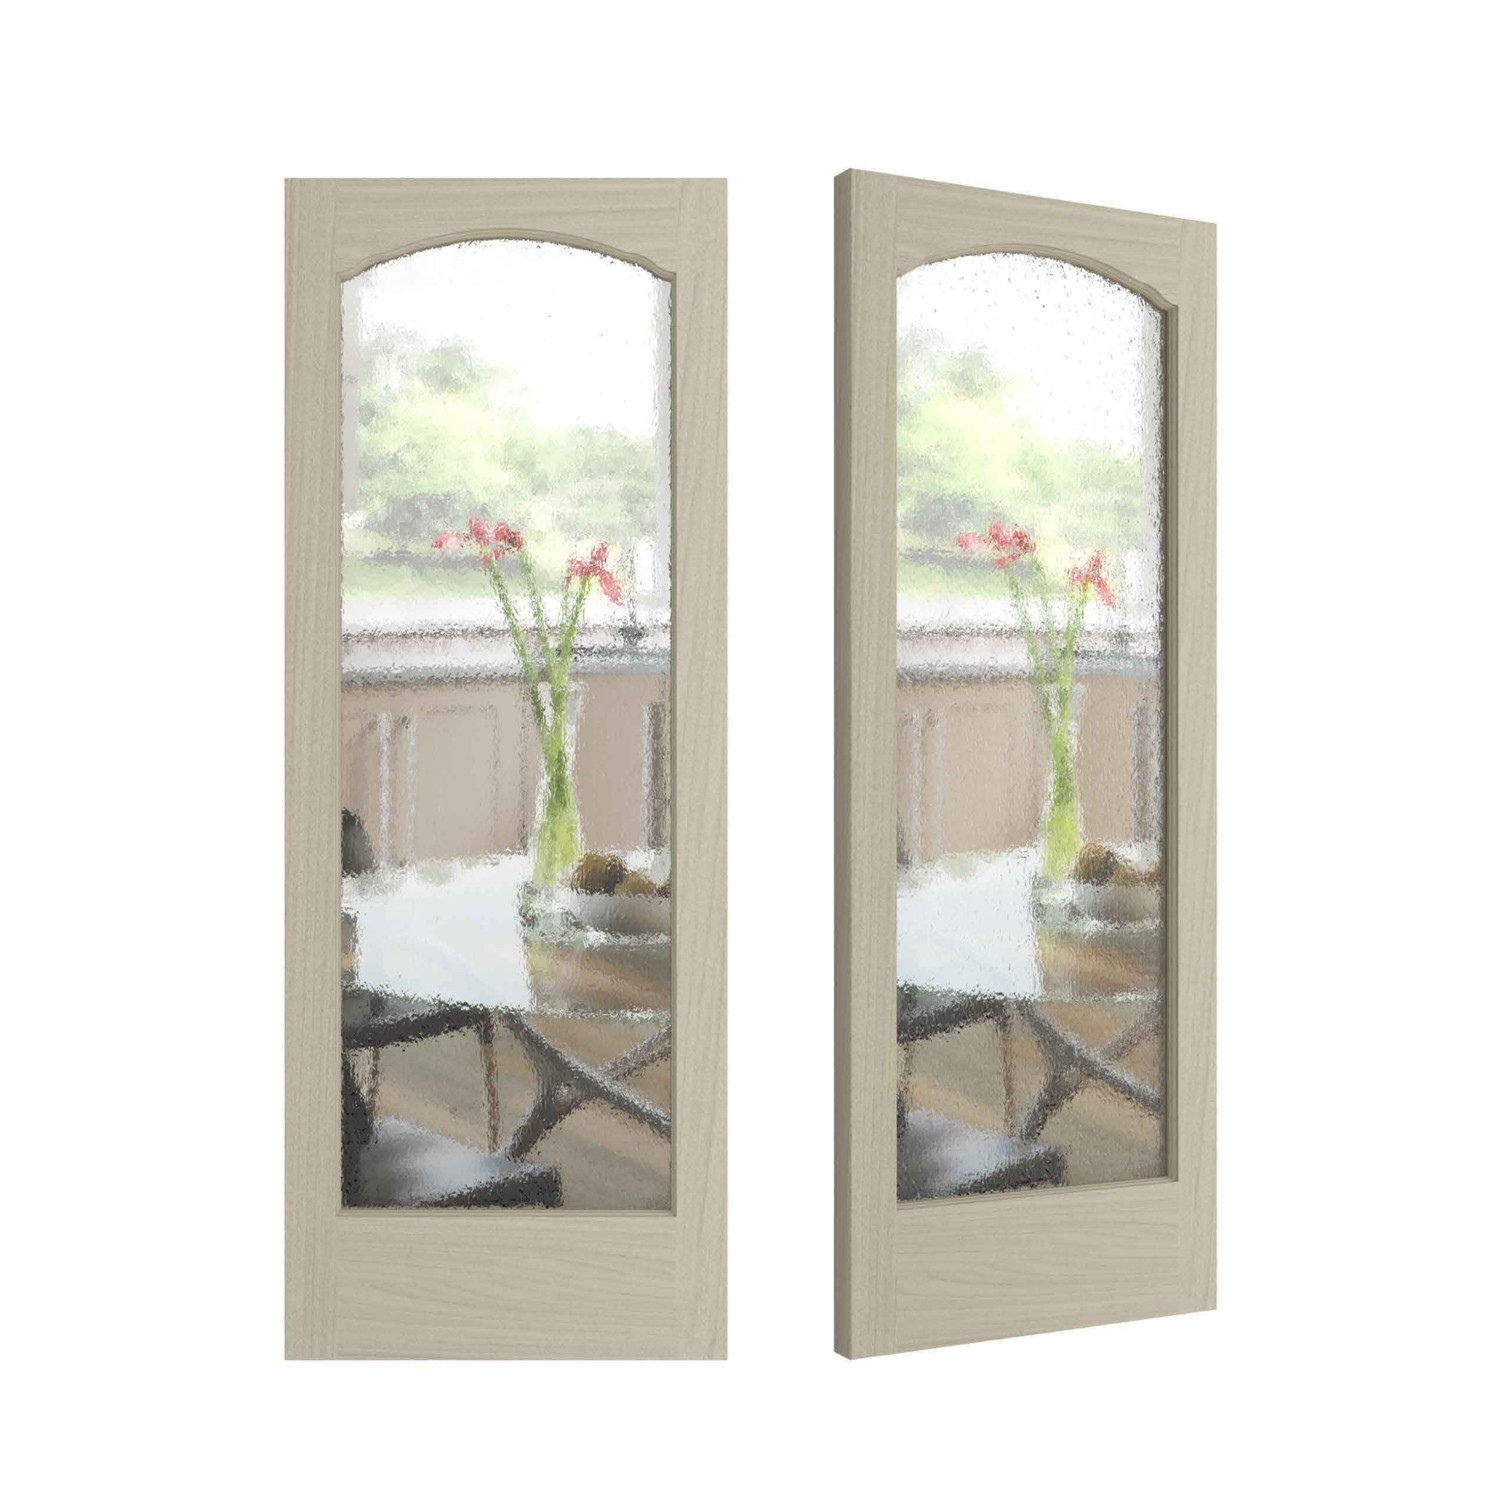 French Curves Door \u2013 Hourglass patterned Glass  sc 1 st  LAS Hardwoods & French Curves Door \u2013 Hourglass patterned Glass \u2013 LAS Hardwoods